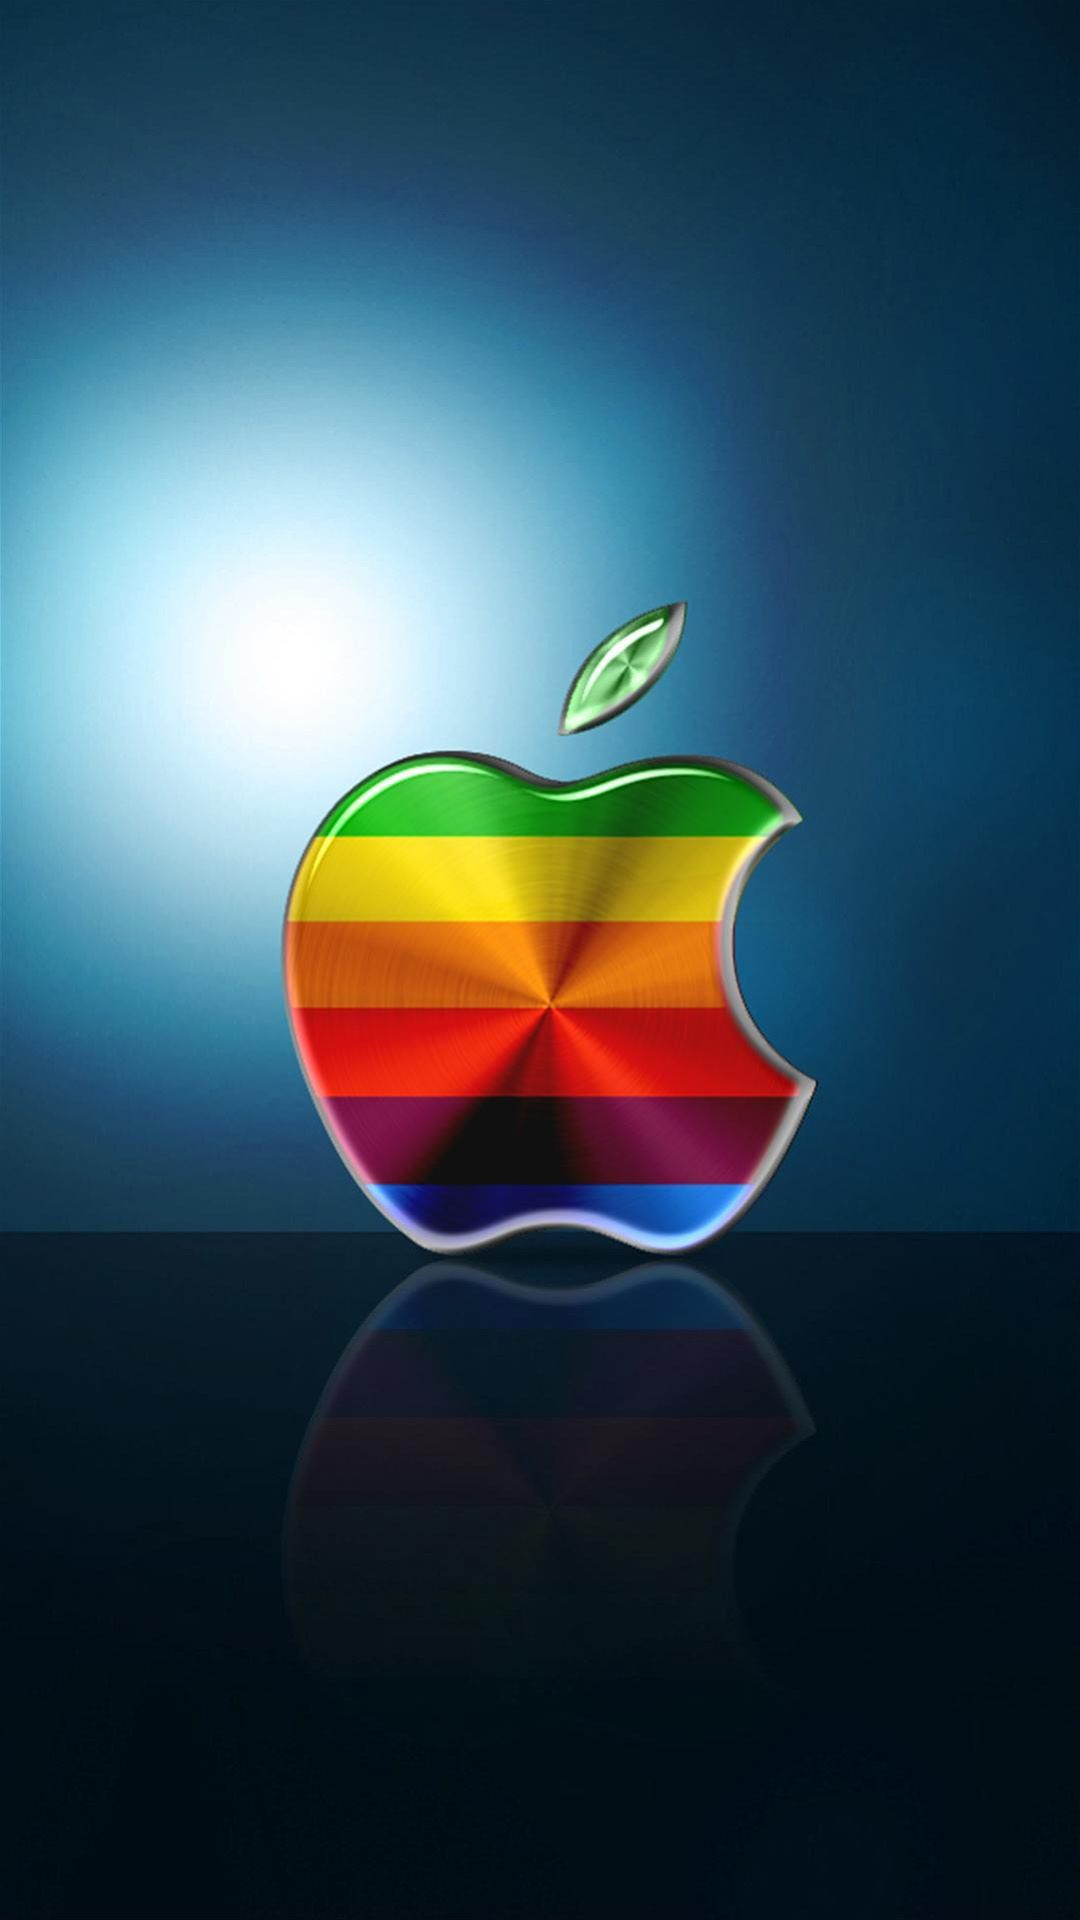 Apple Mobile Wallpapers - Top Free ...